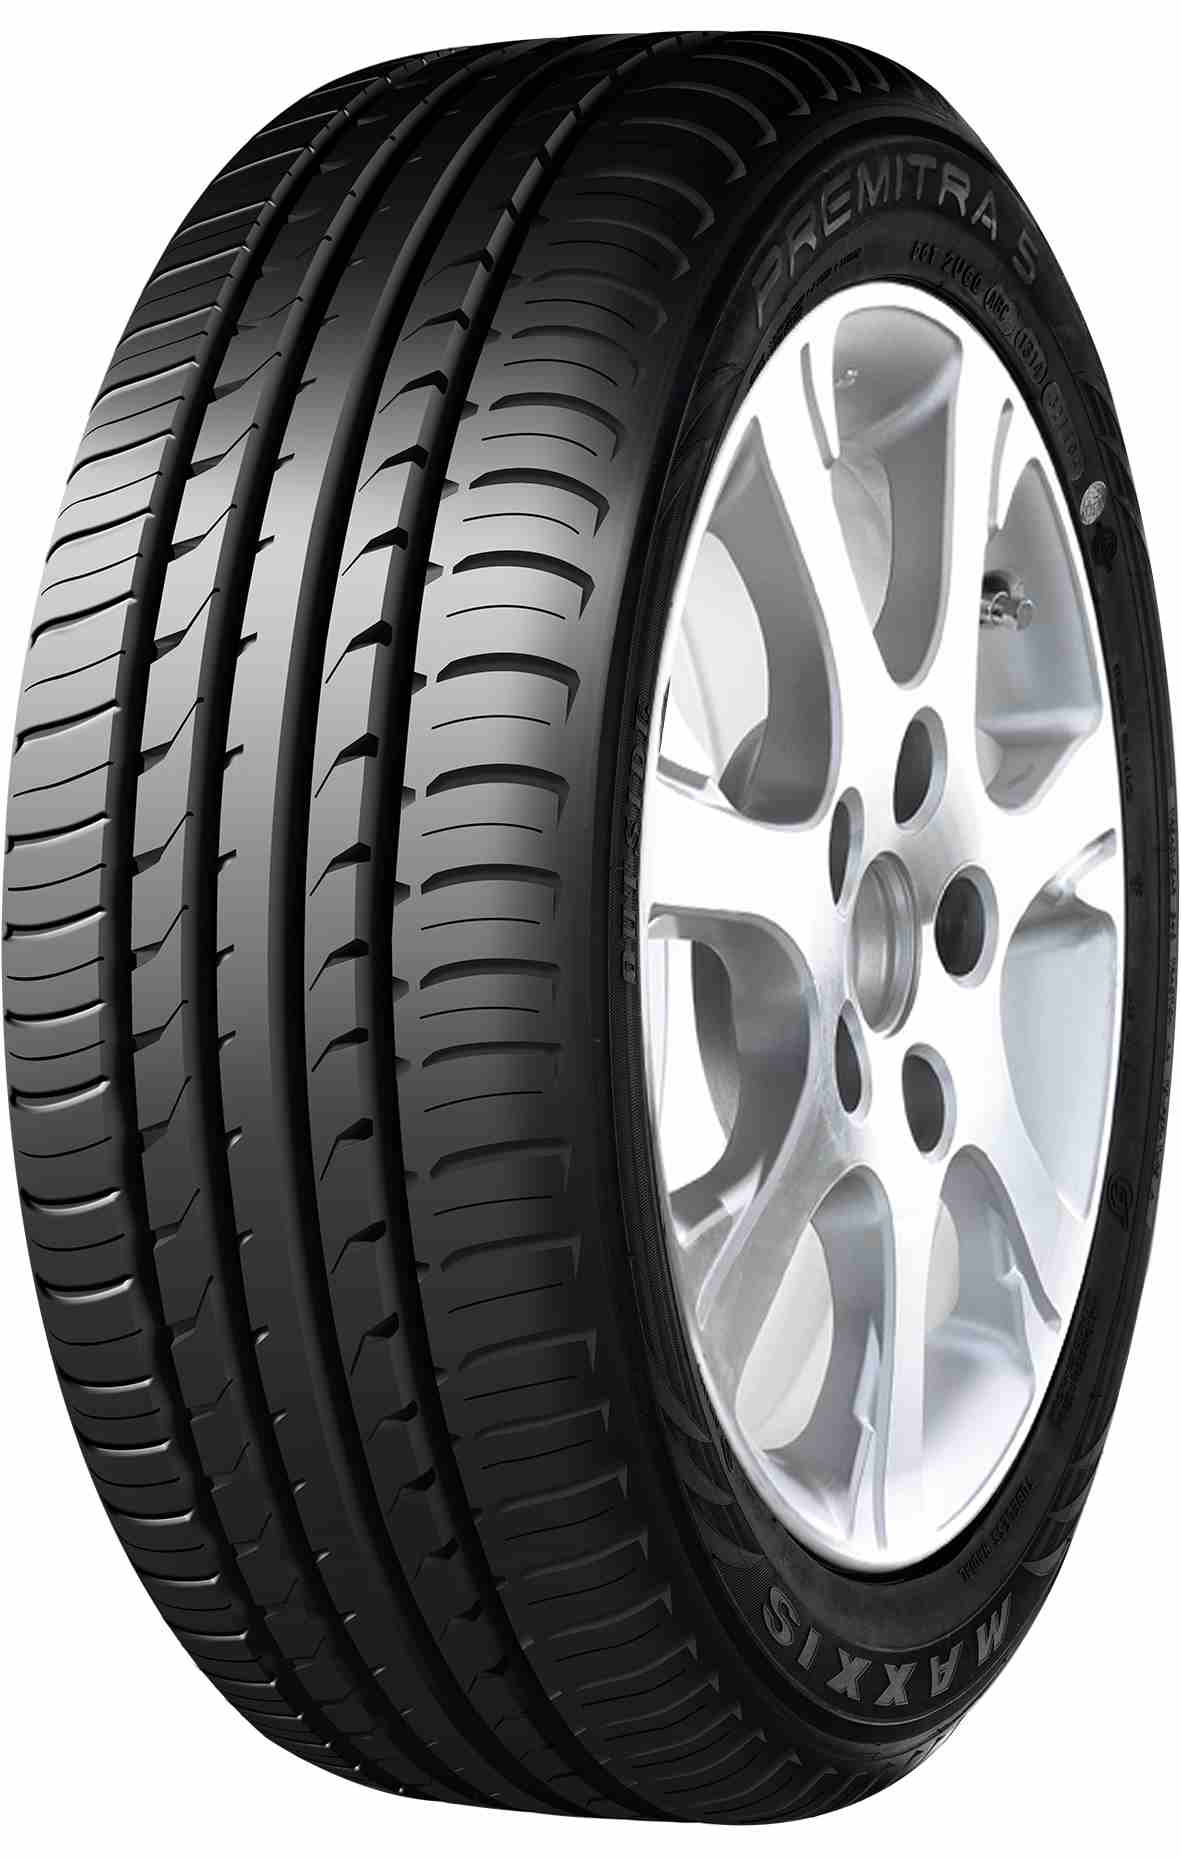 Summer Tyre MAXXIS MAXXIS HP5 215/45R17 91 W